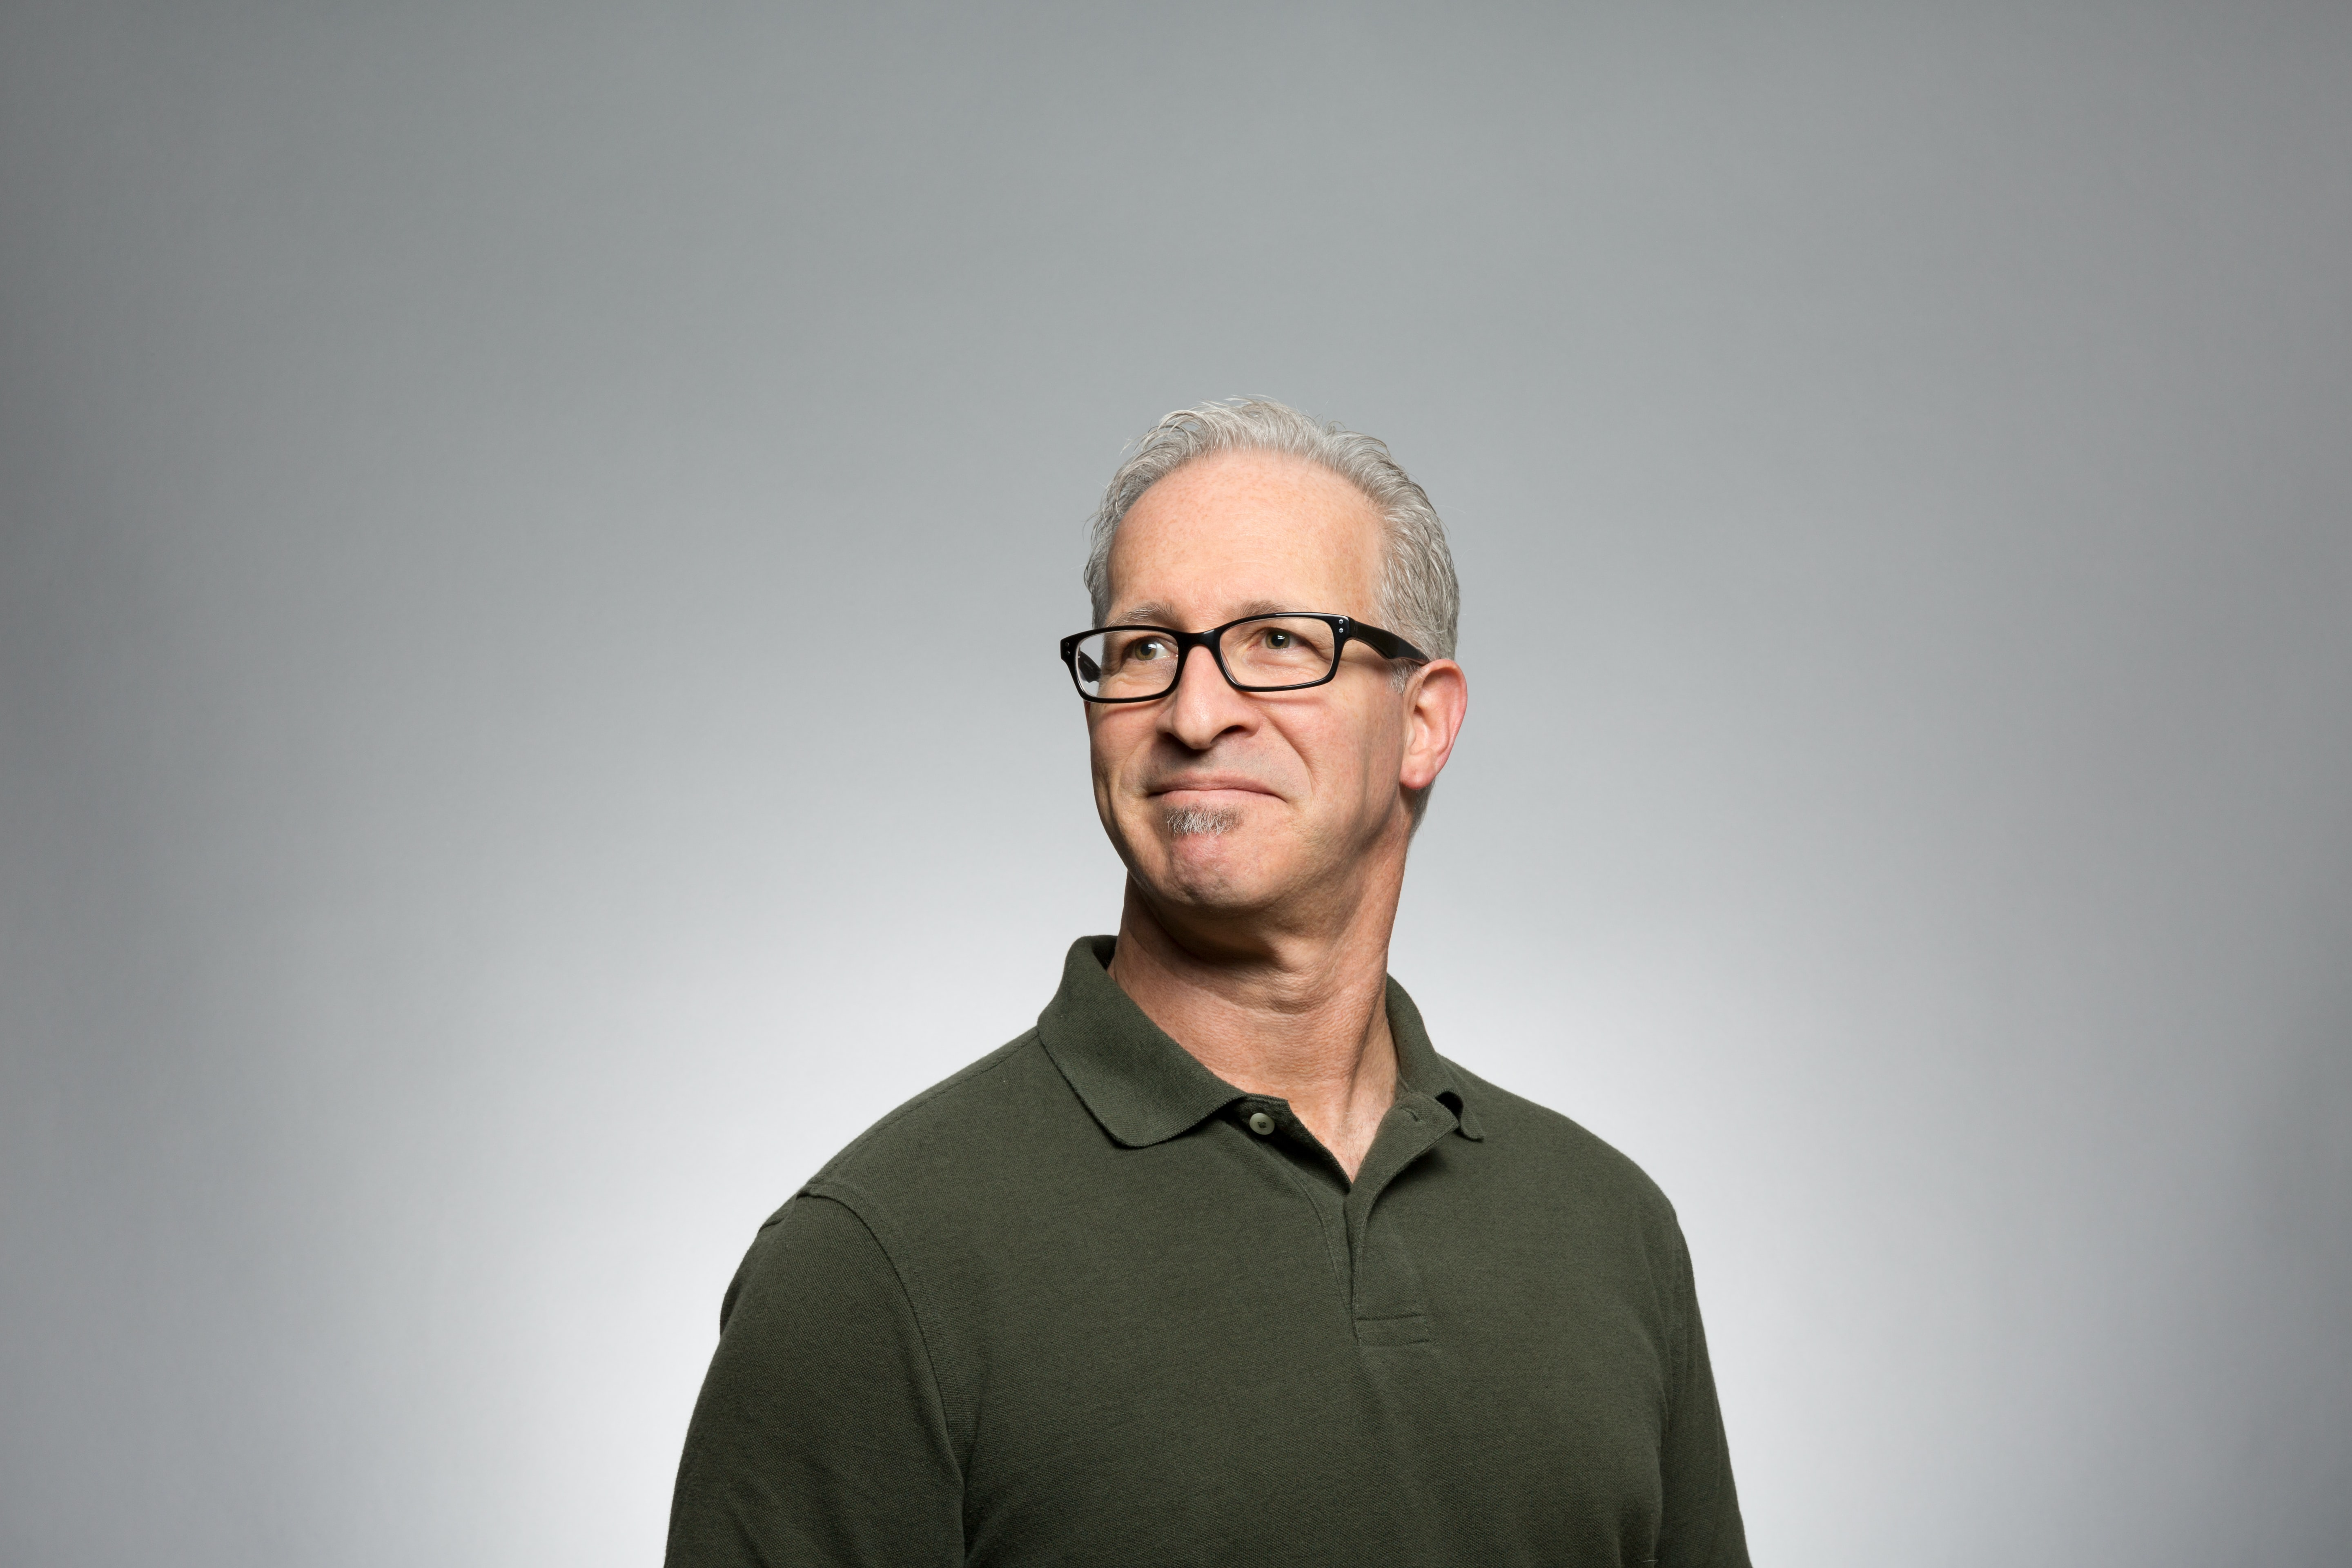 A smiling gray-haired man in glasses and a green polo shirt